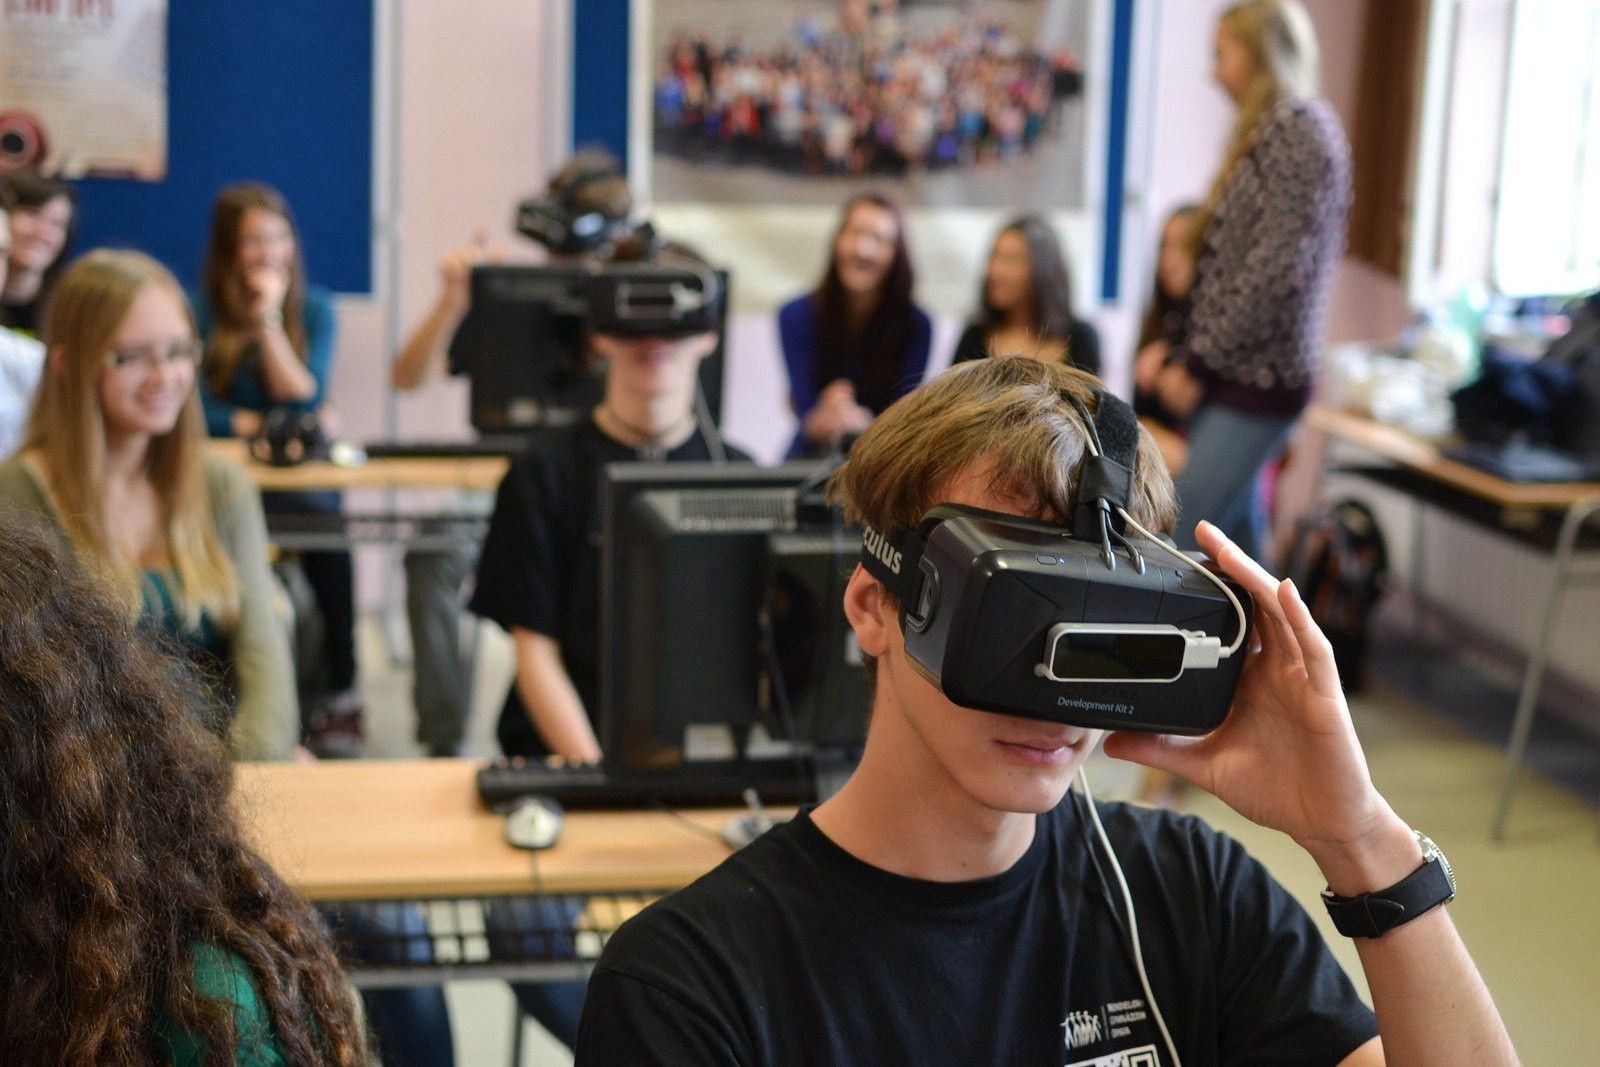 Virtual reality is the future of education